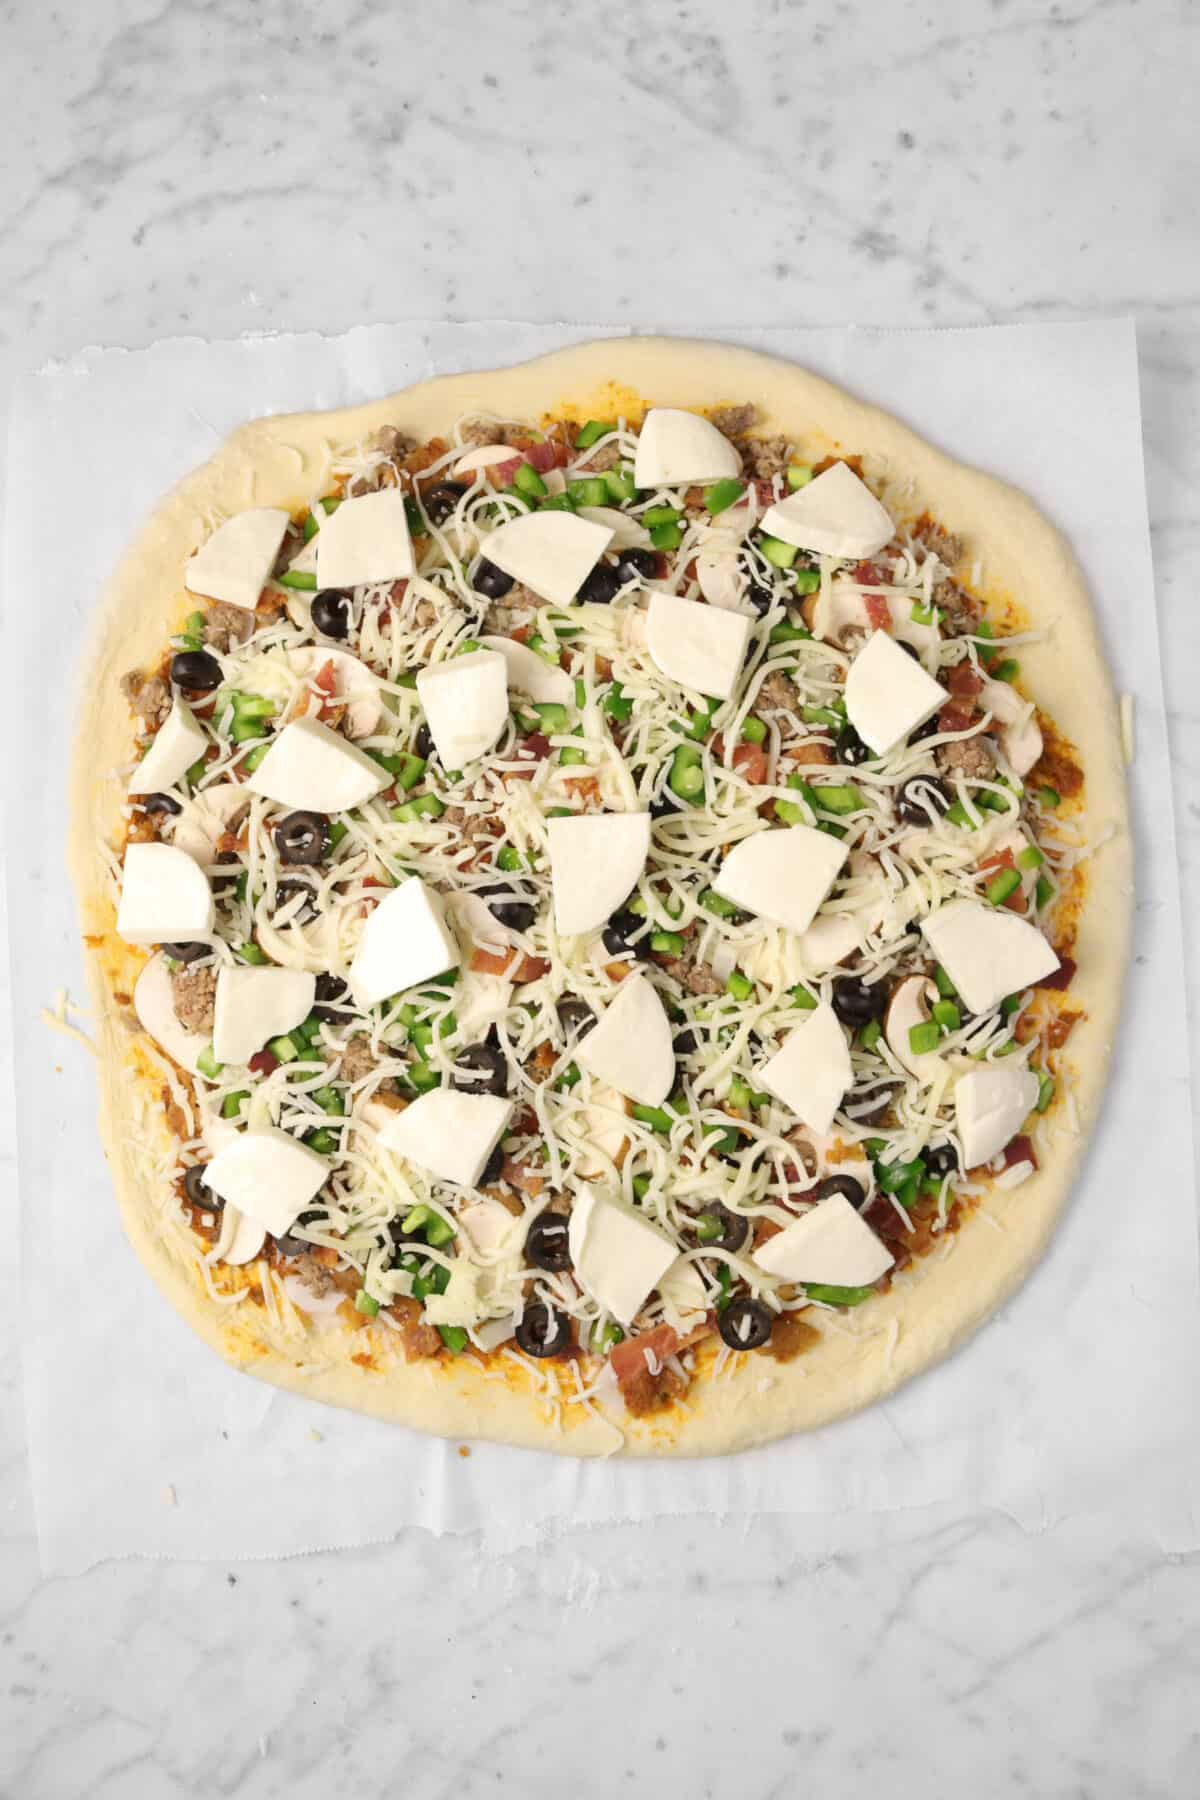 chopped fresh mozzarella added on top of pizza